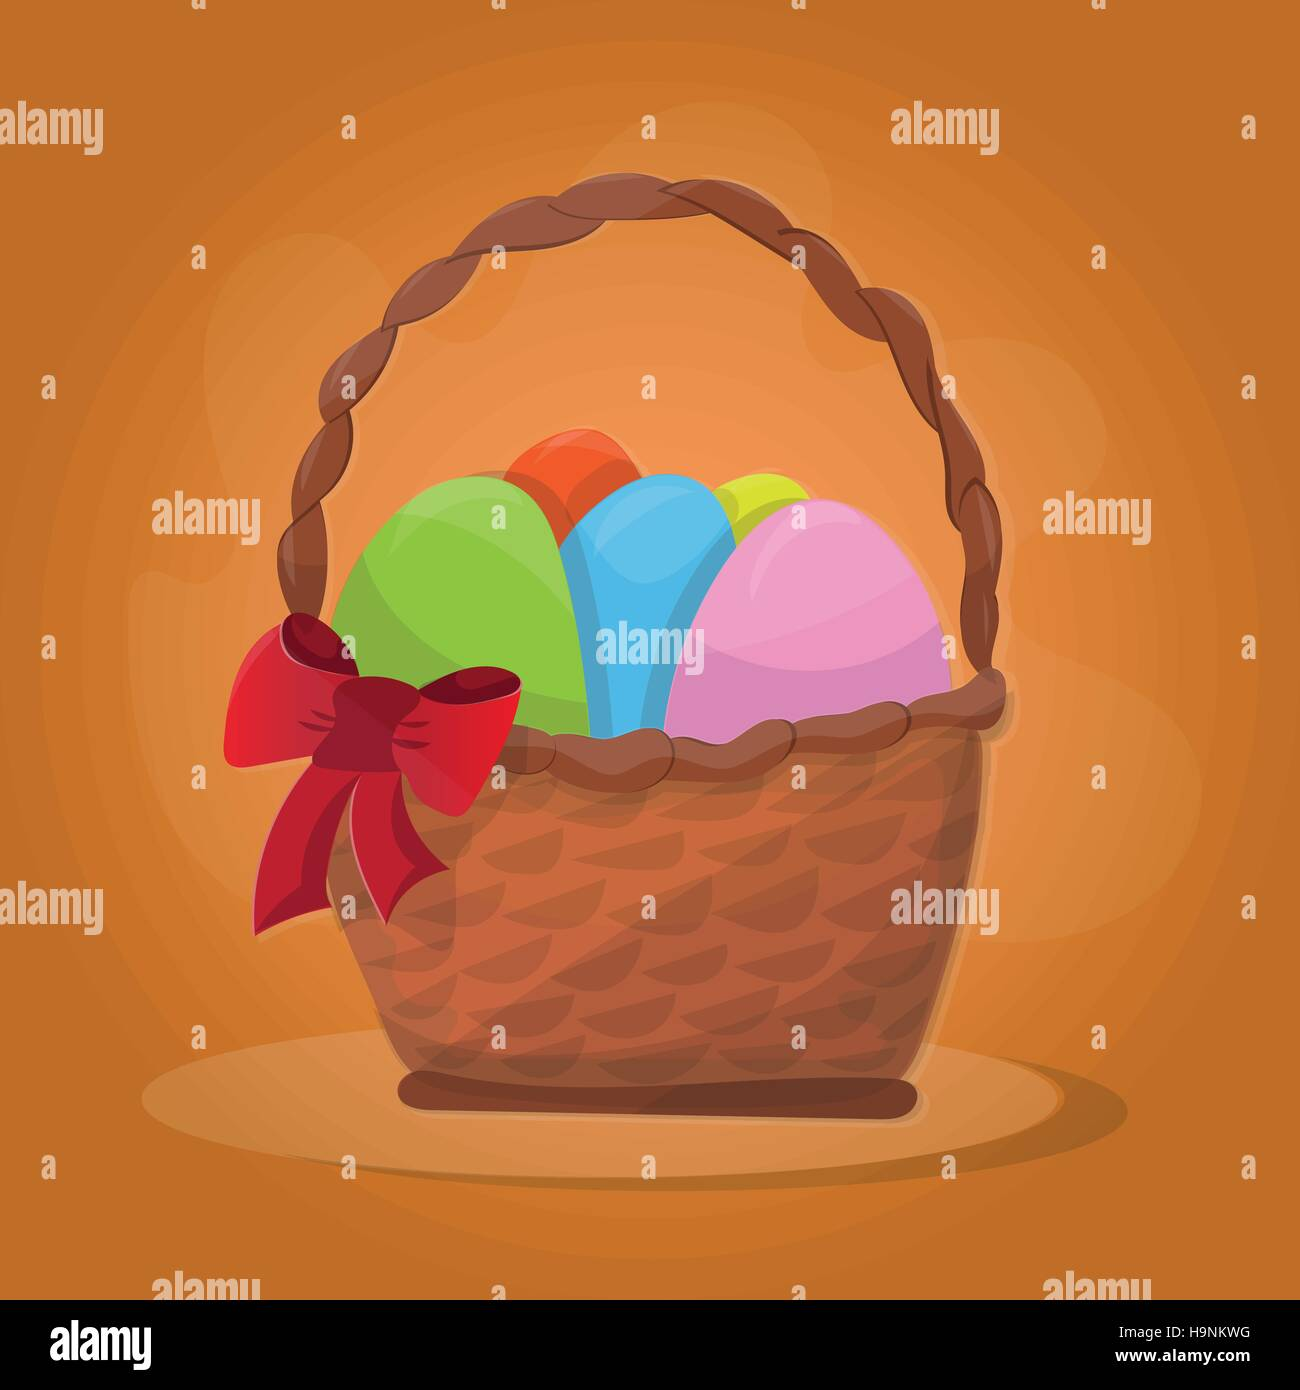 Basket with Easter eggs on a orange background - Stock Vector